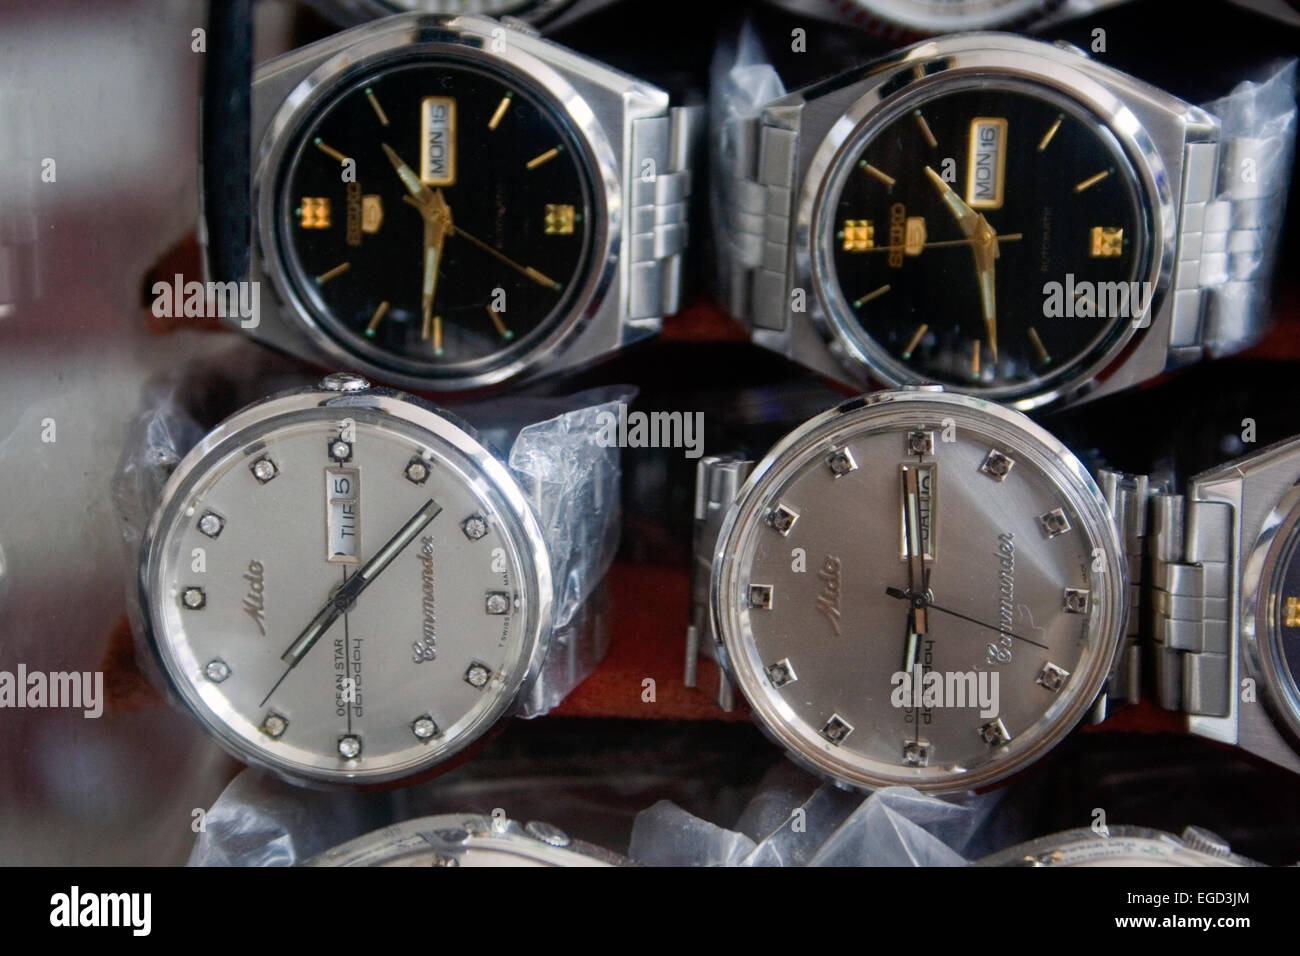 Watches are for sale and displayed in a display case on a city sidewalk in Phnom Penh, Cambodia. - Stock Image